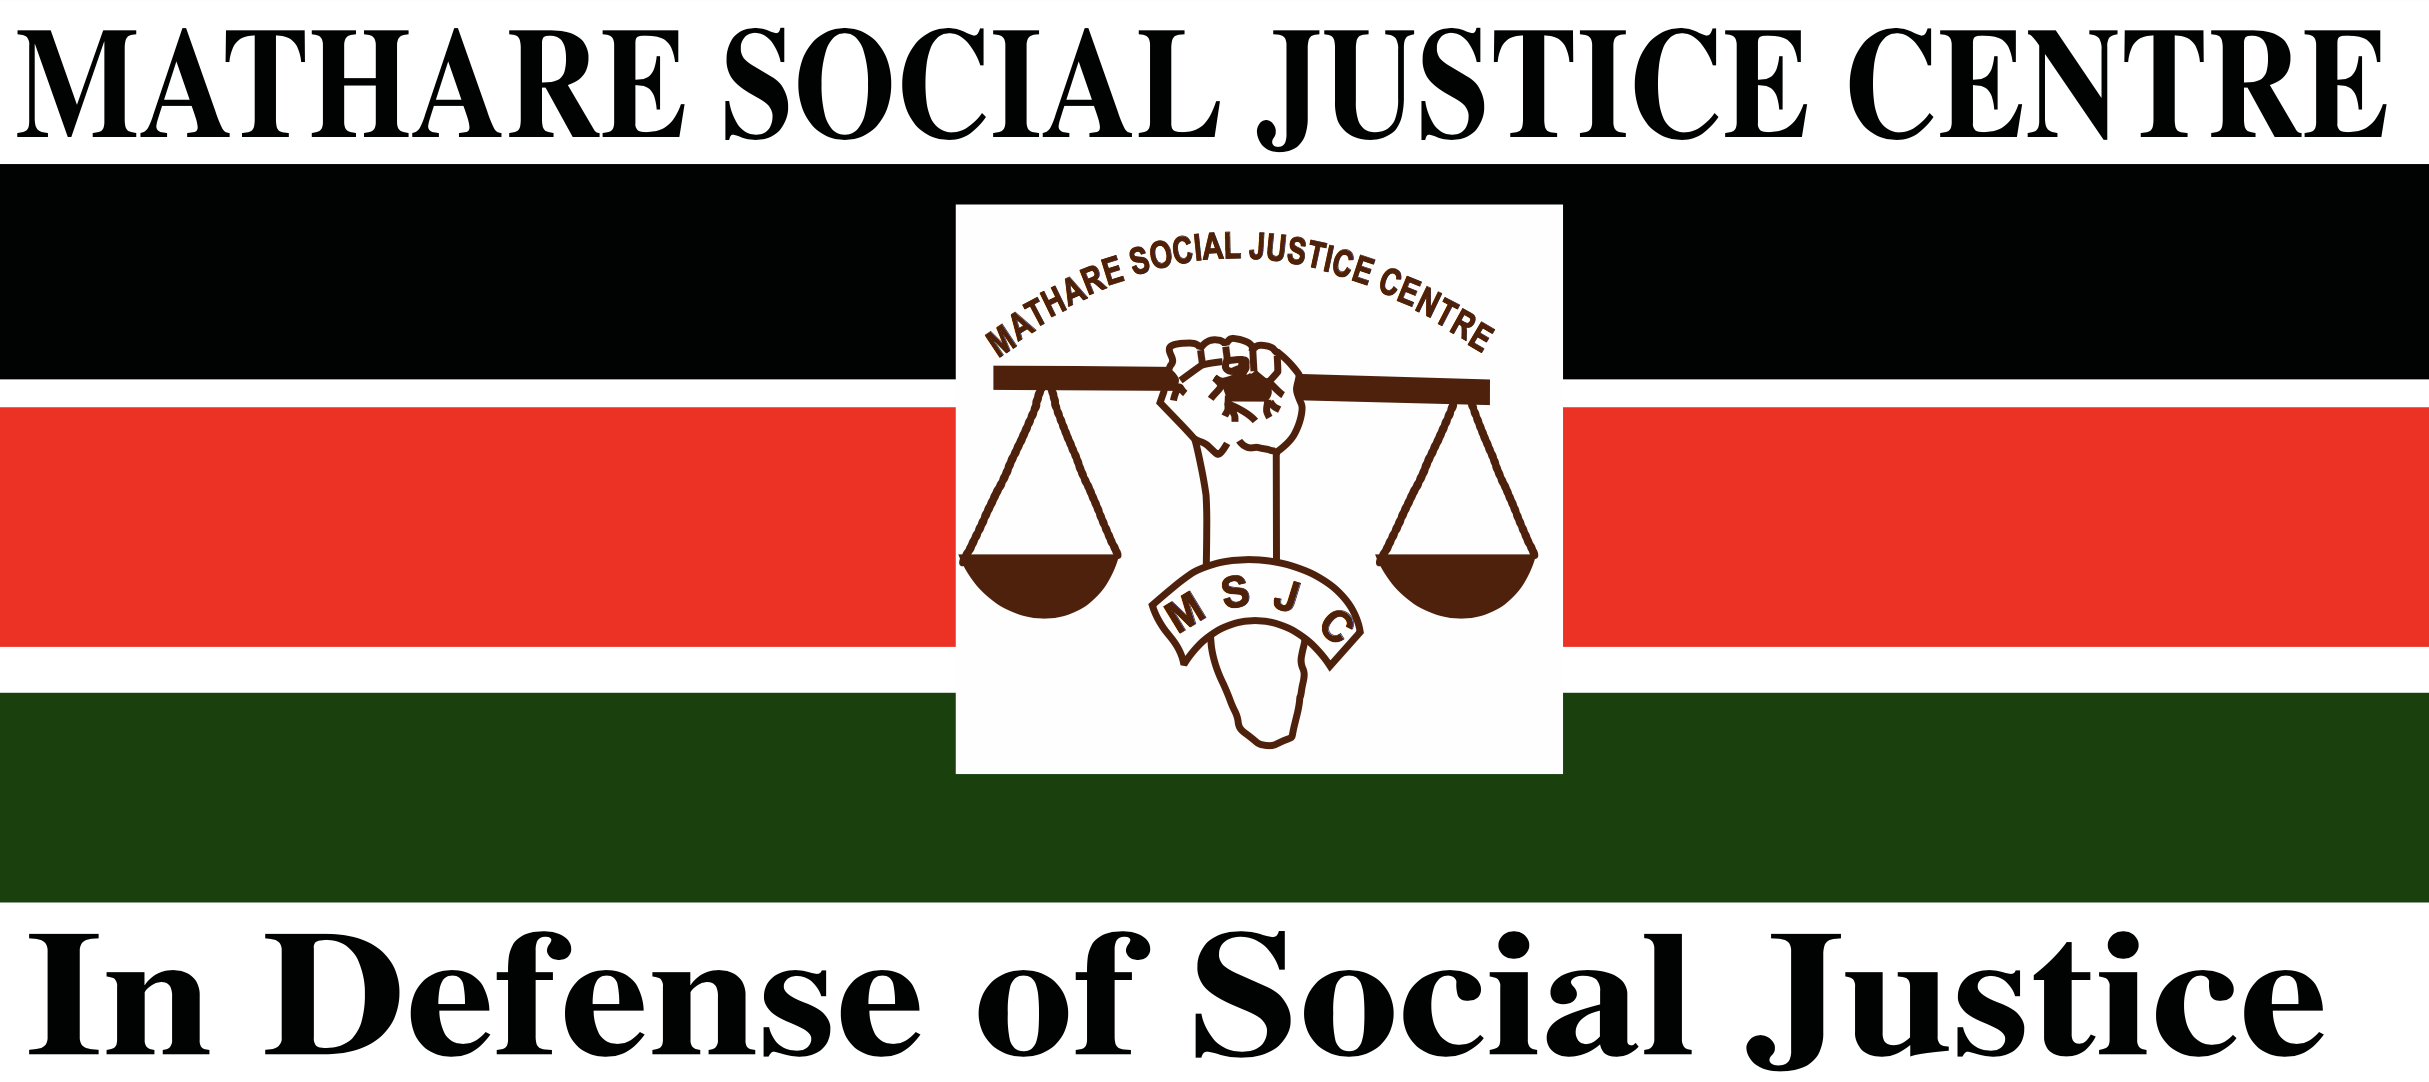 Mathare Social Justice Centre